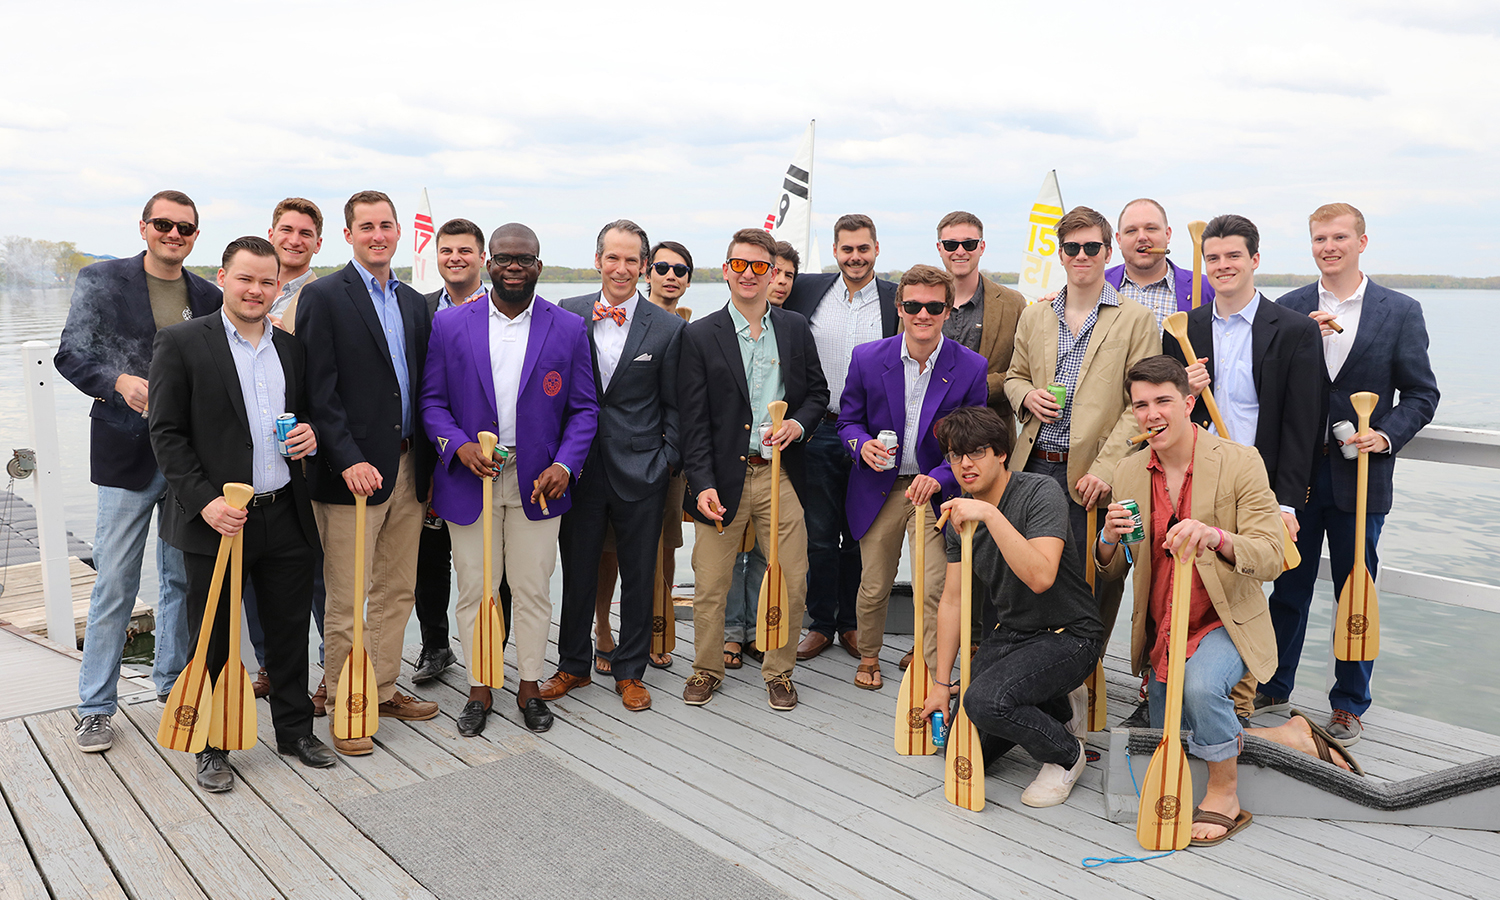 Assistant Vice President for Advancement and Alumni Relations Jared Weeden '91 joins graduating members of the Sigma Chi Fraternity for a group photo on the docks of Bozzuto Boathouse.